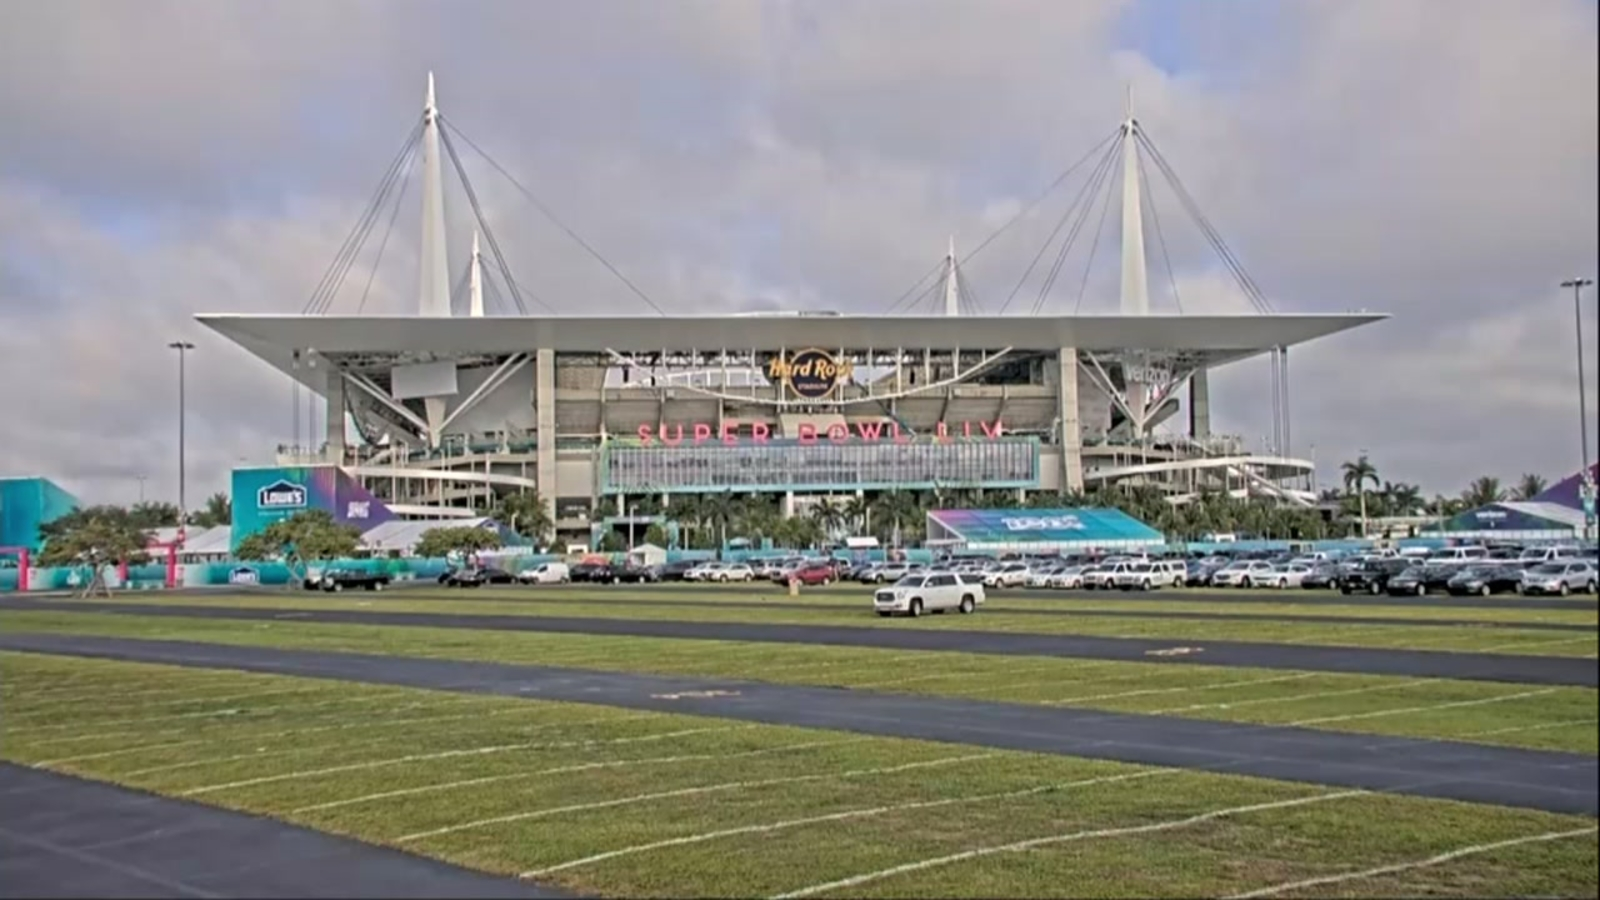 Stepped Up Security In Miami Ahead Of Super Bowl 2020